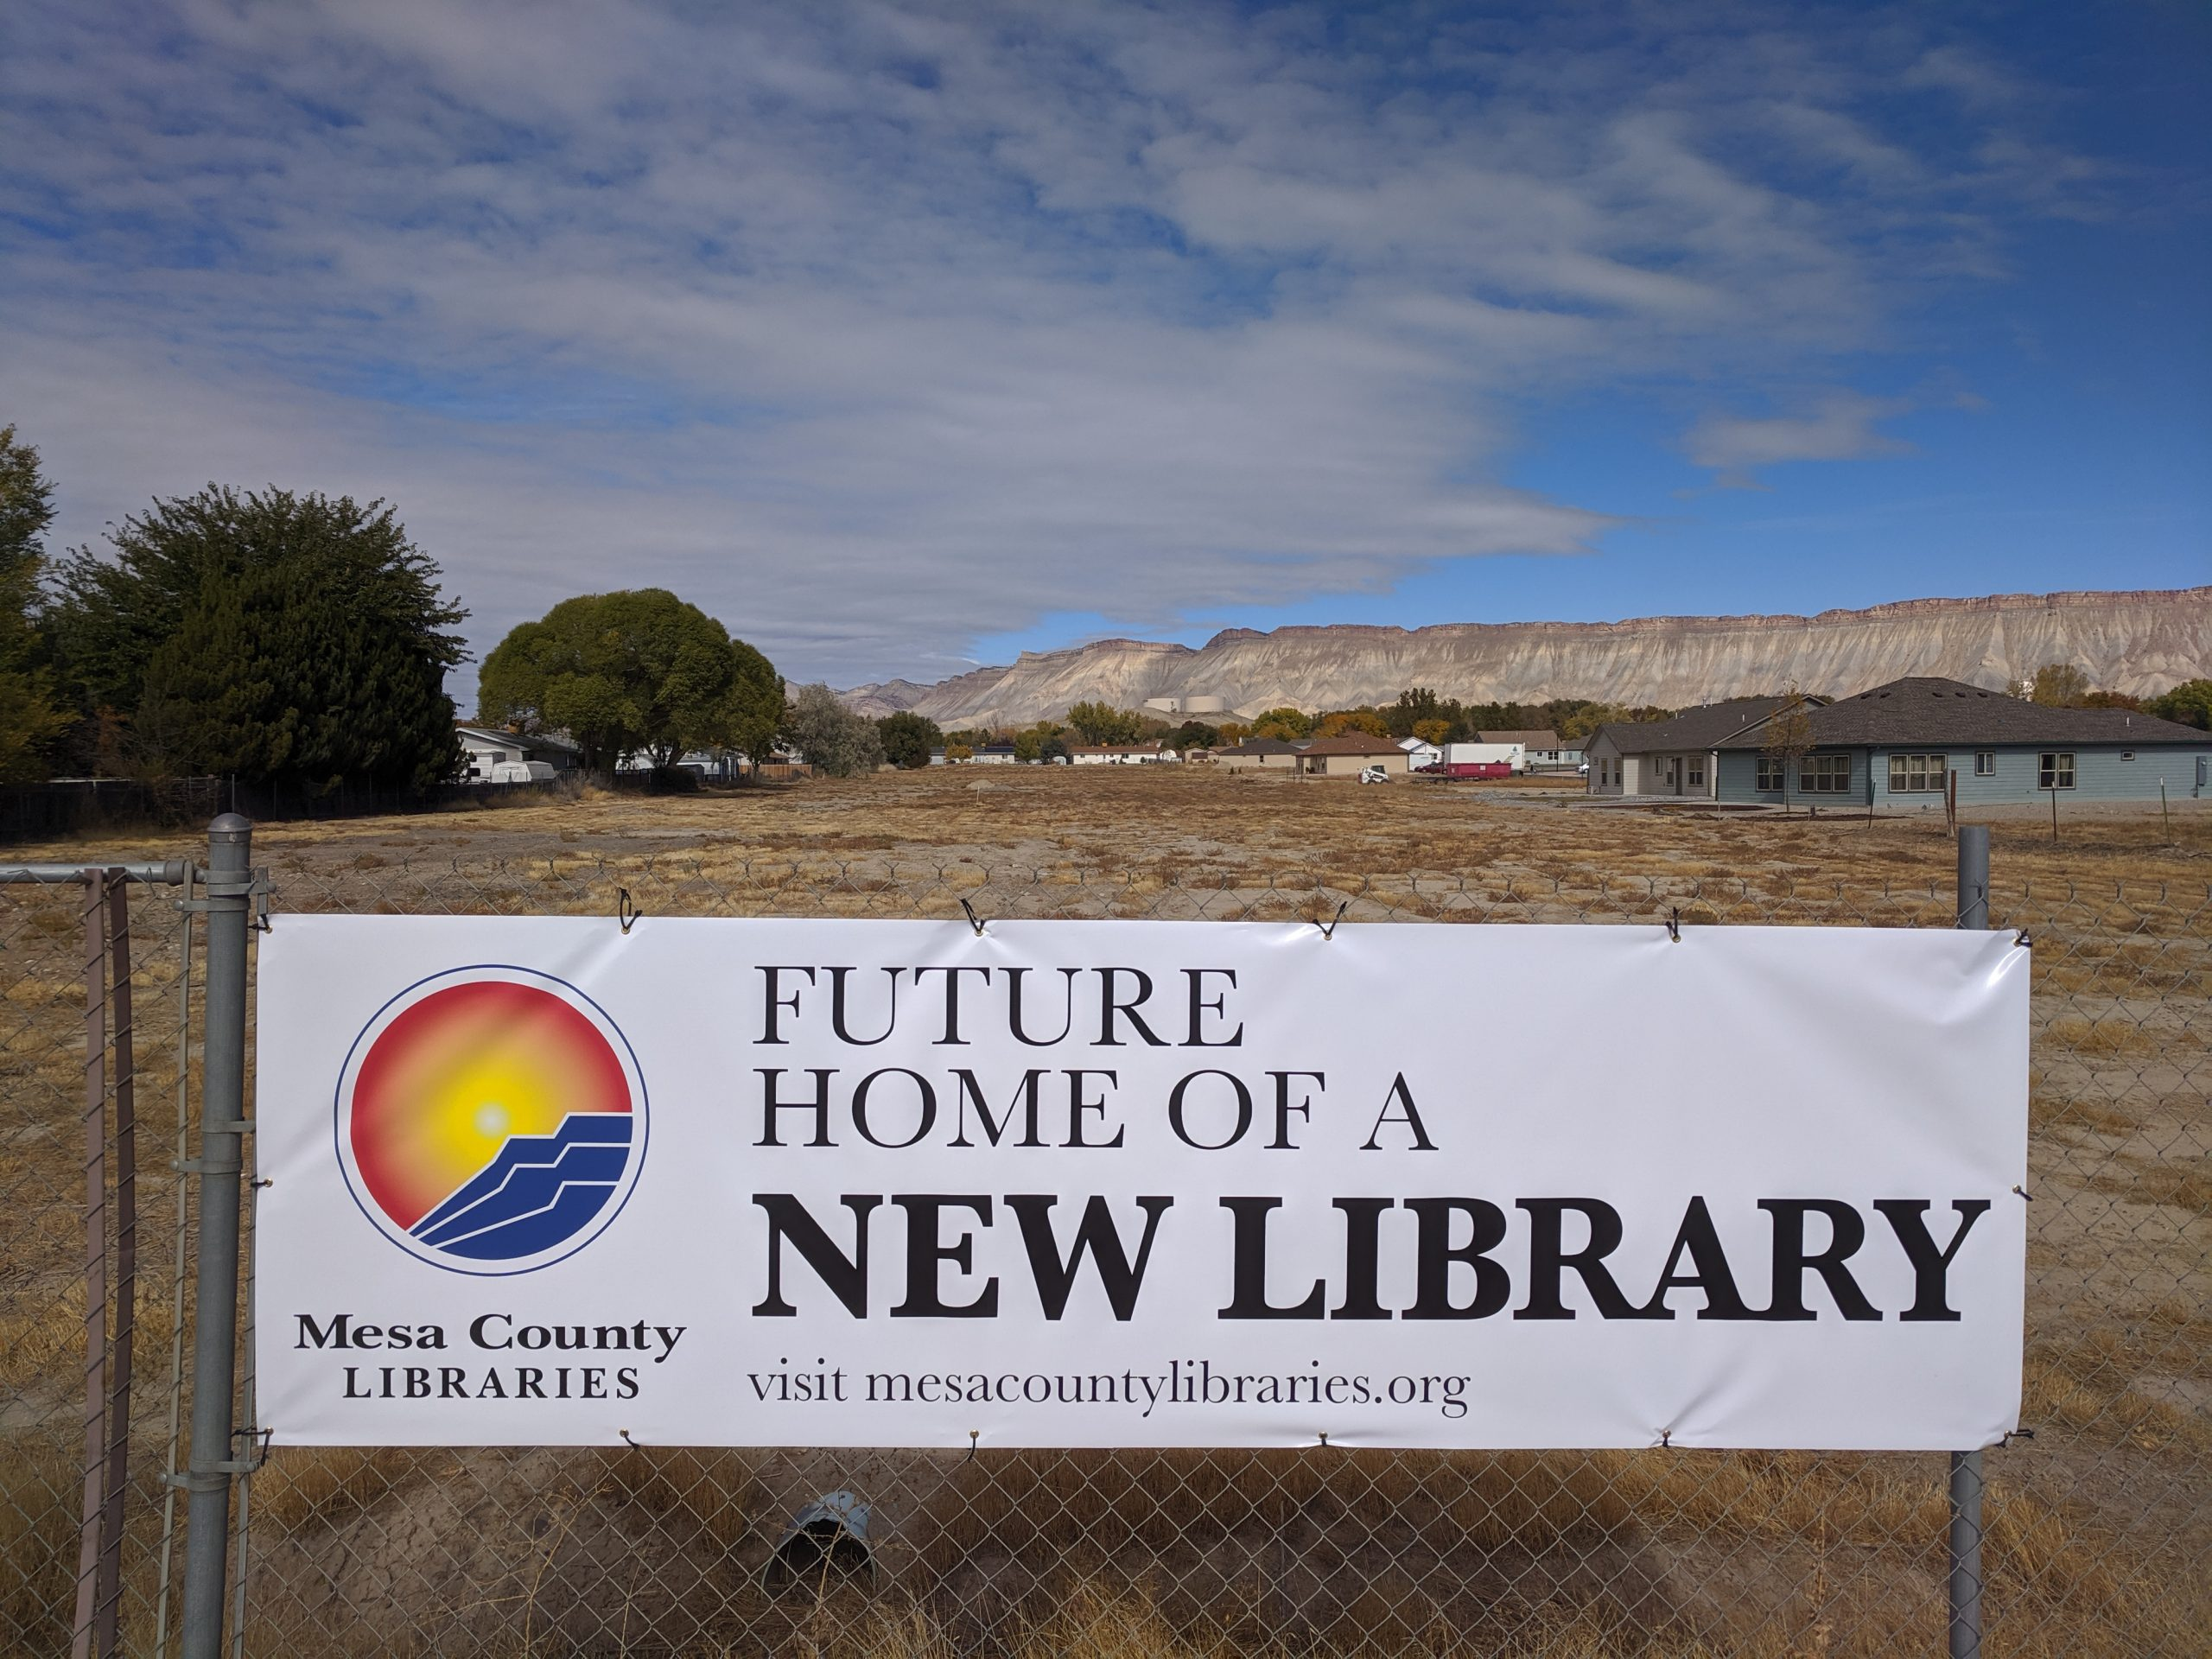 """Open field with """"Future Home of a New Library"""" sign in foreground"""